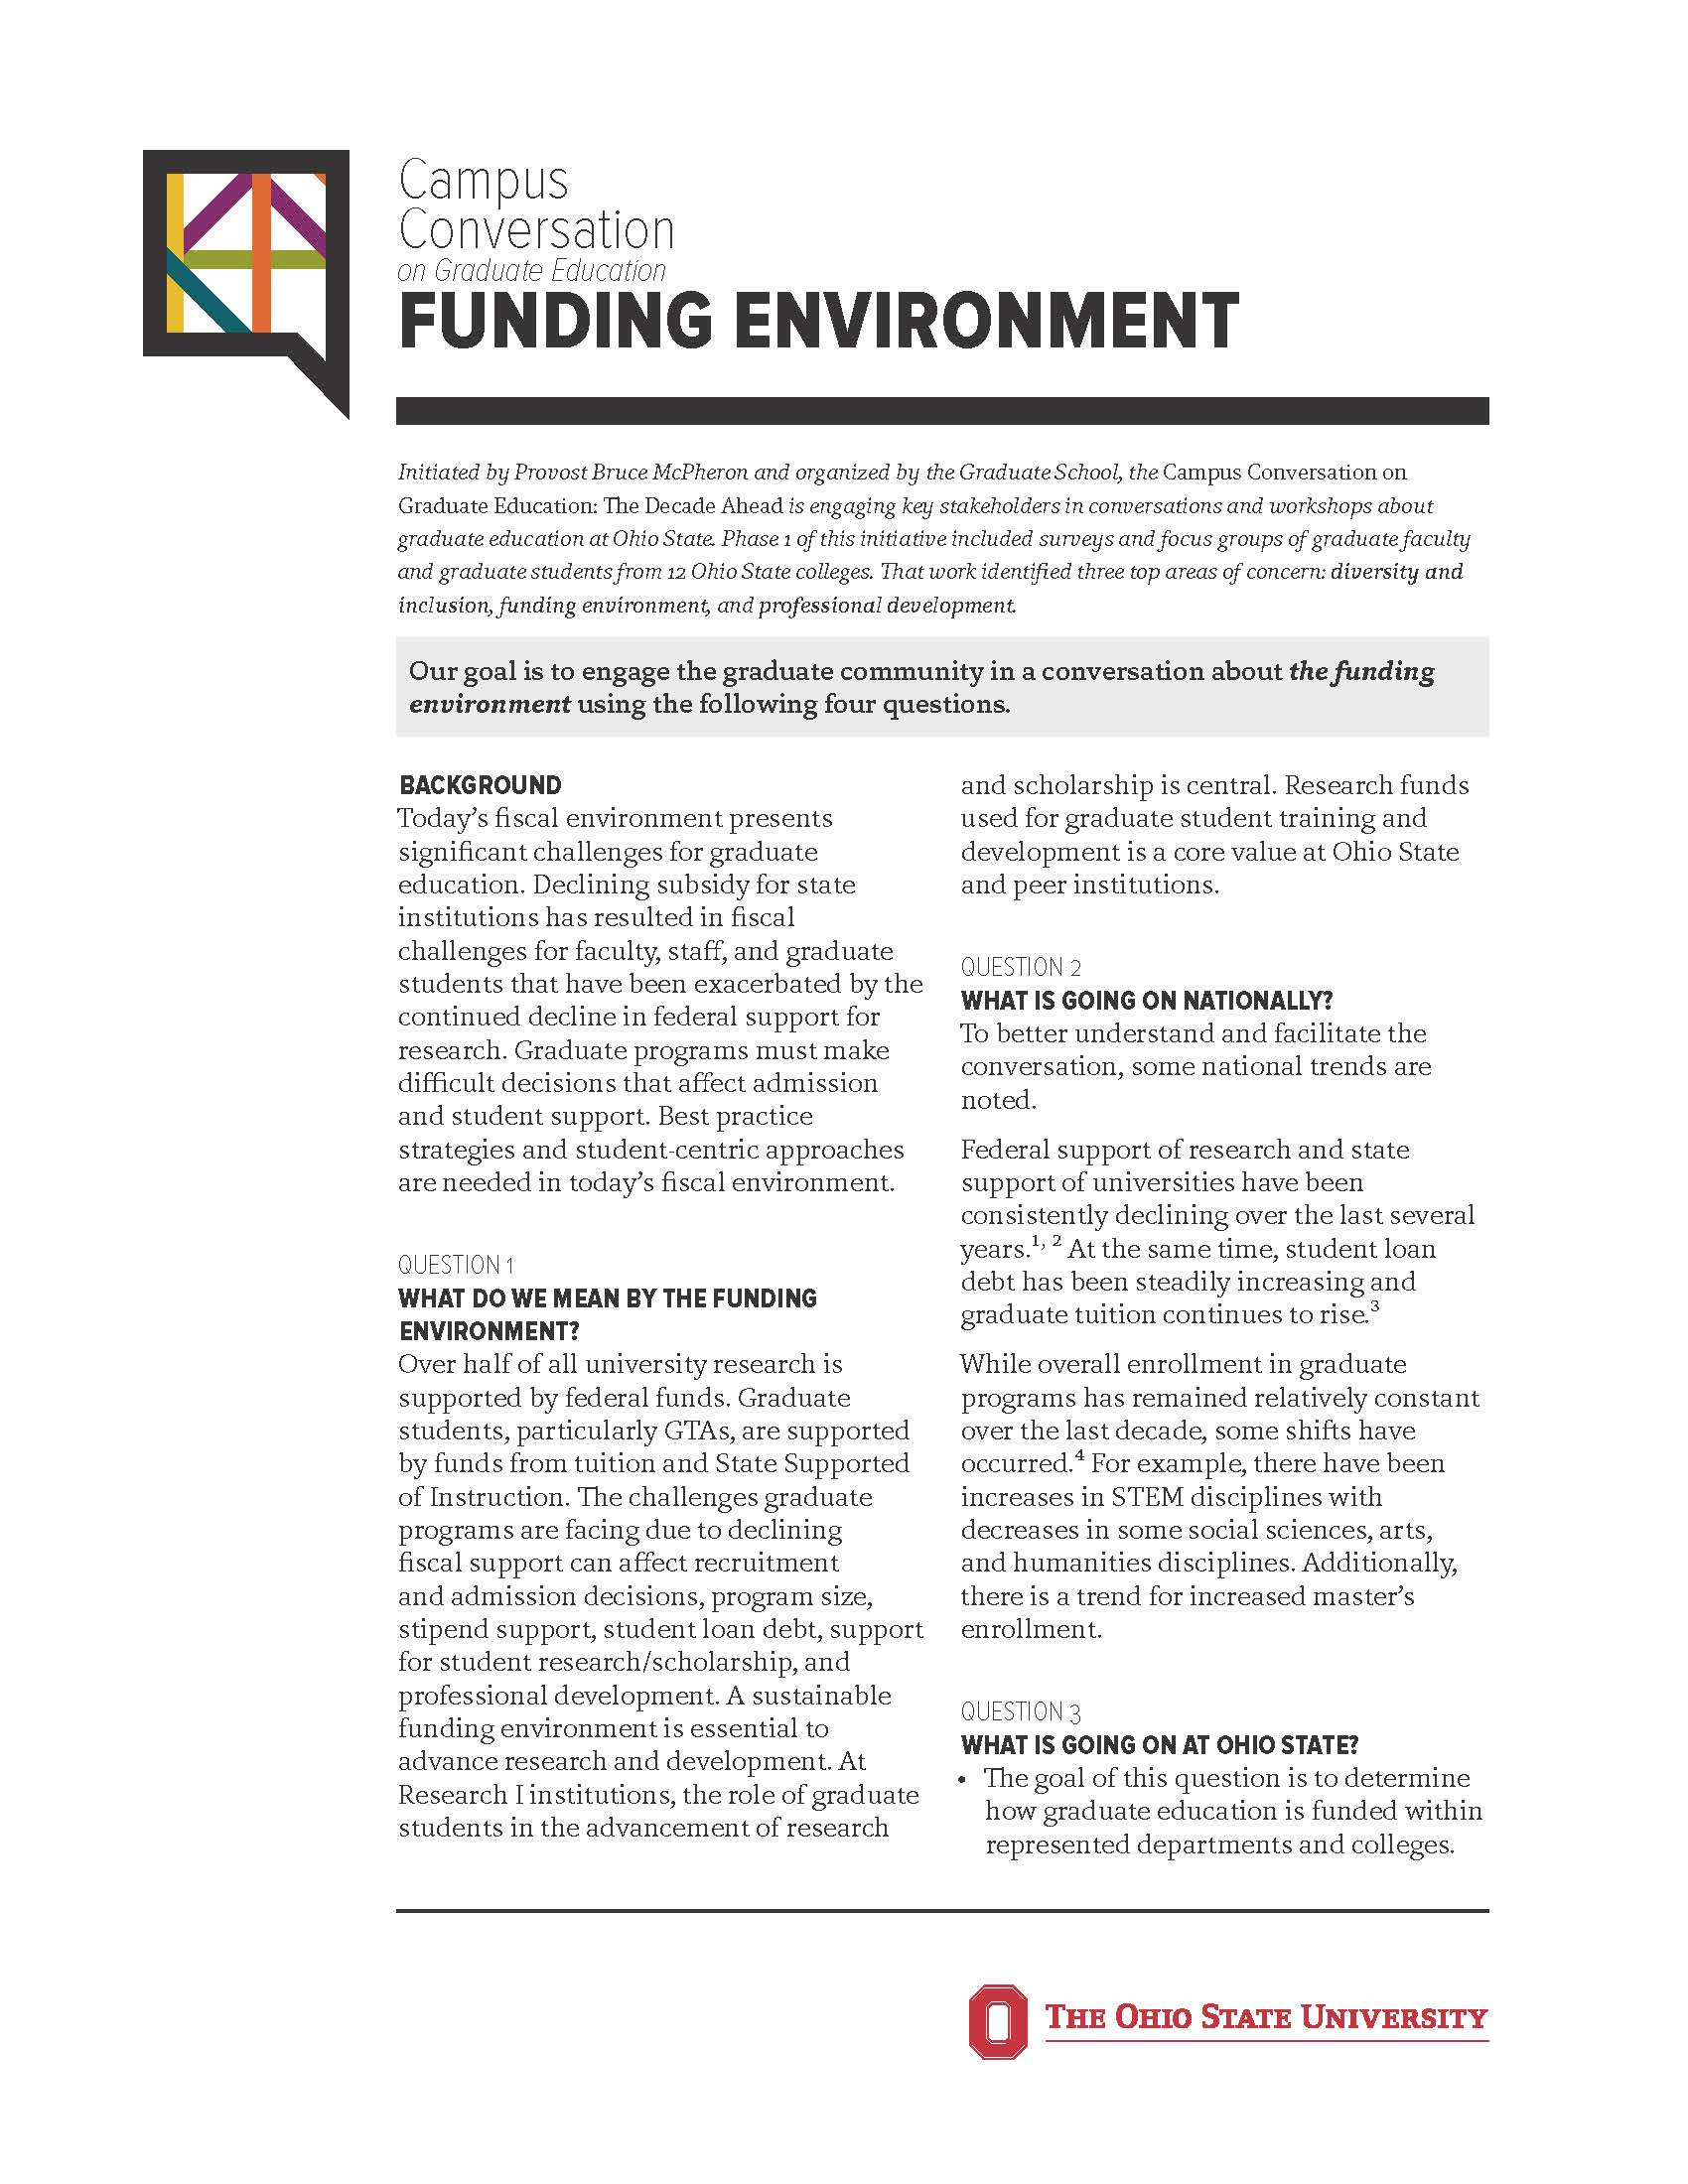 Funding environment one-pager